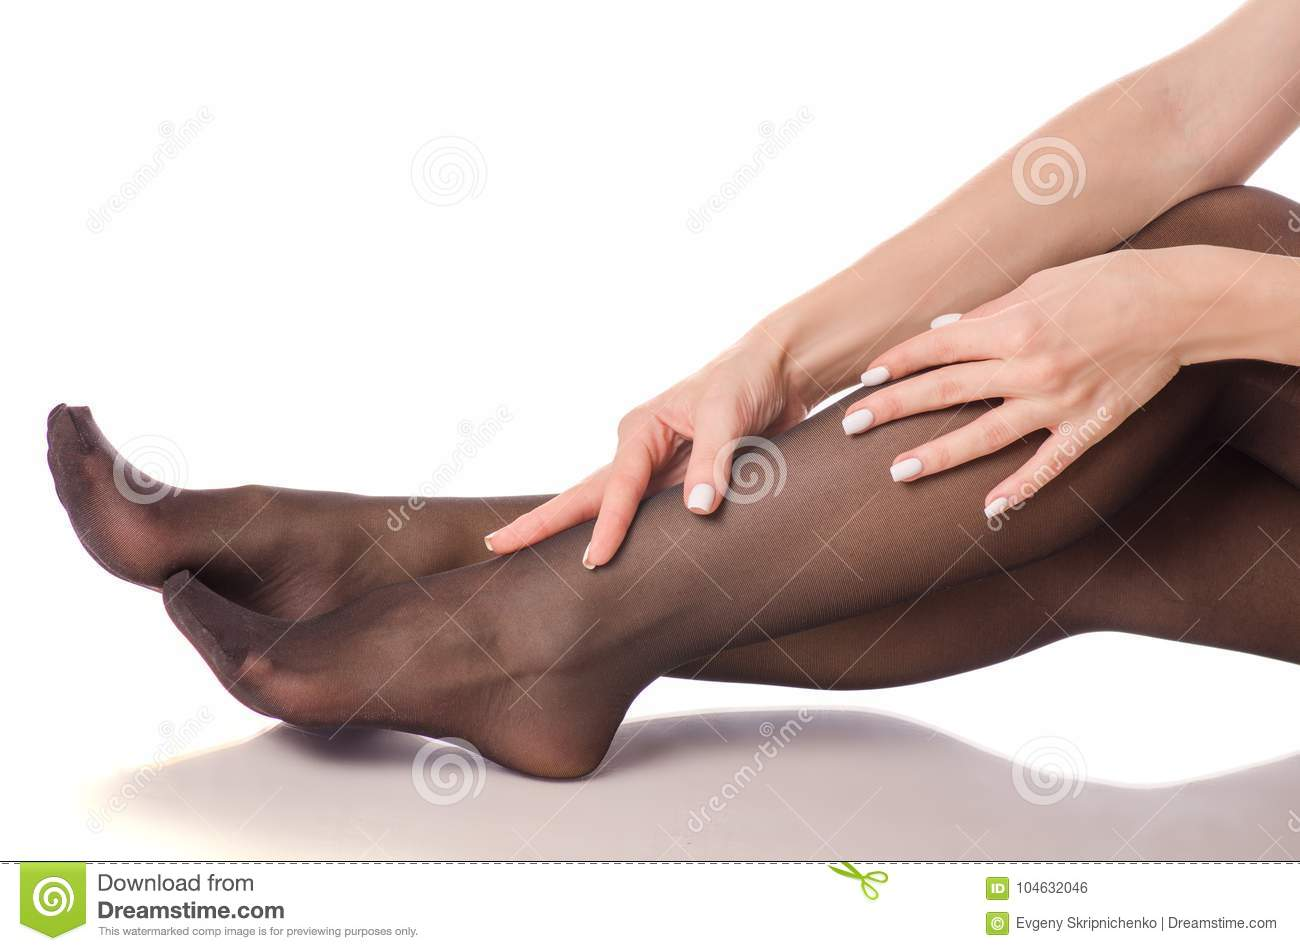 Pantyhose stockings nylons beautiful legs